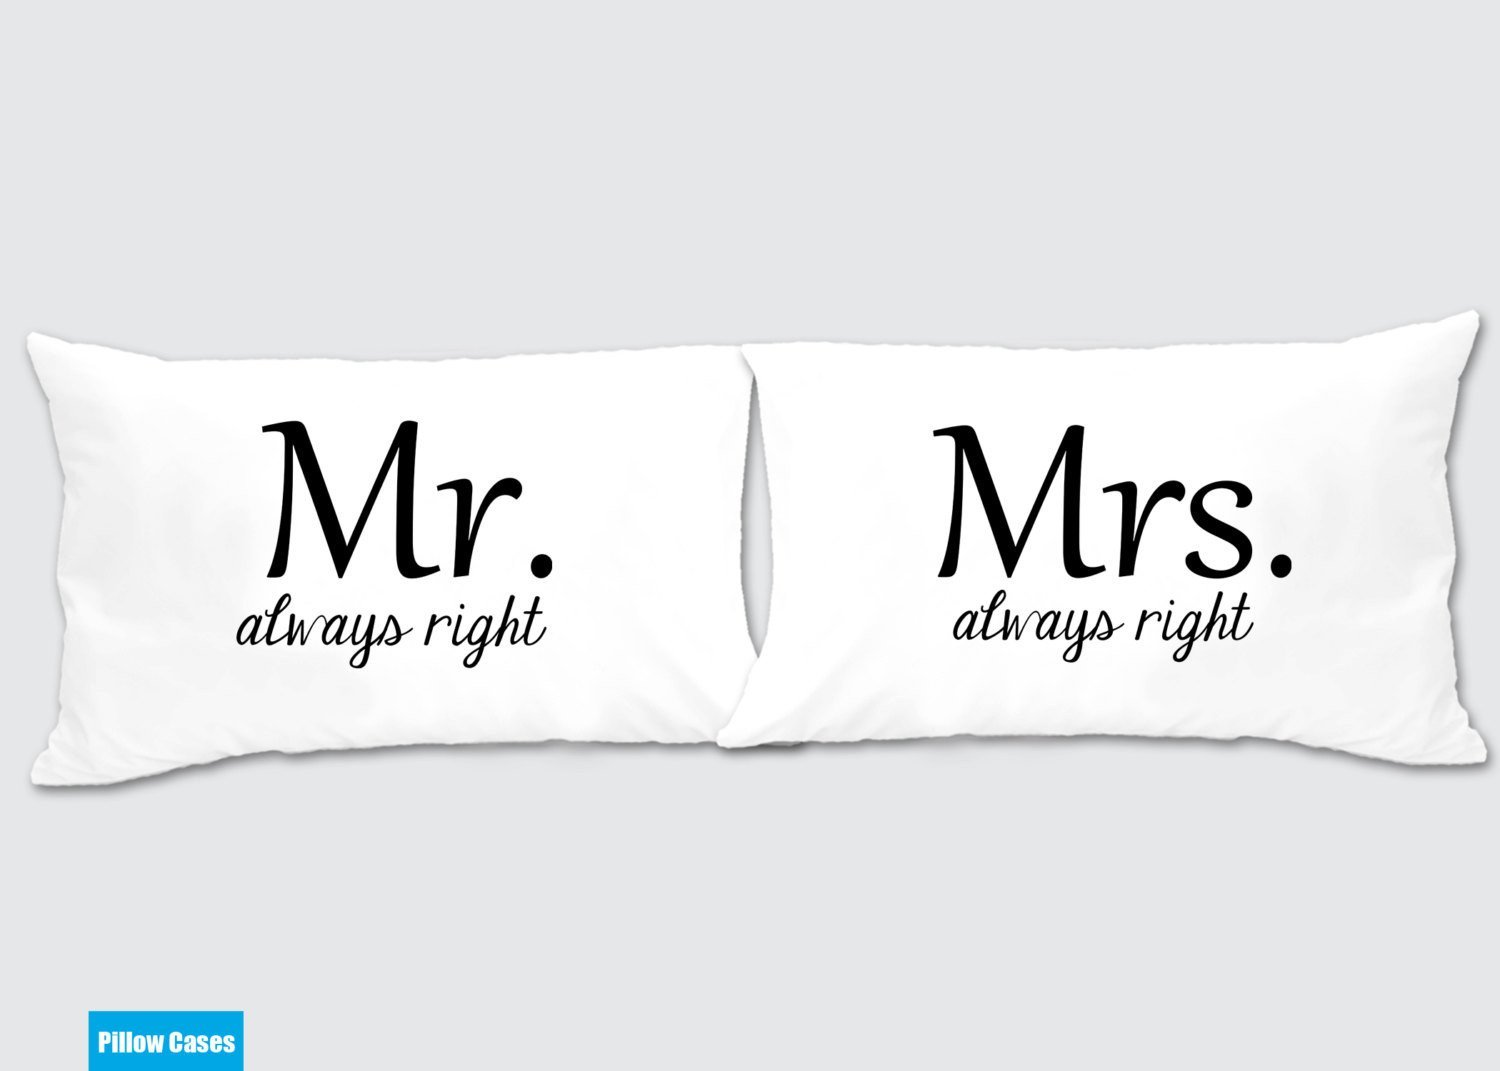 Cute Matching Pillow Cases : Mr. Always Right - Mrs. Always Right Matching Pillow Cases - Awesome Gift for cute couples ...